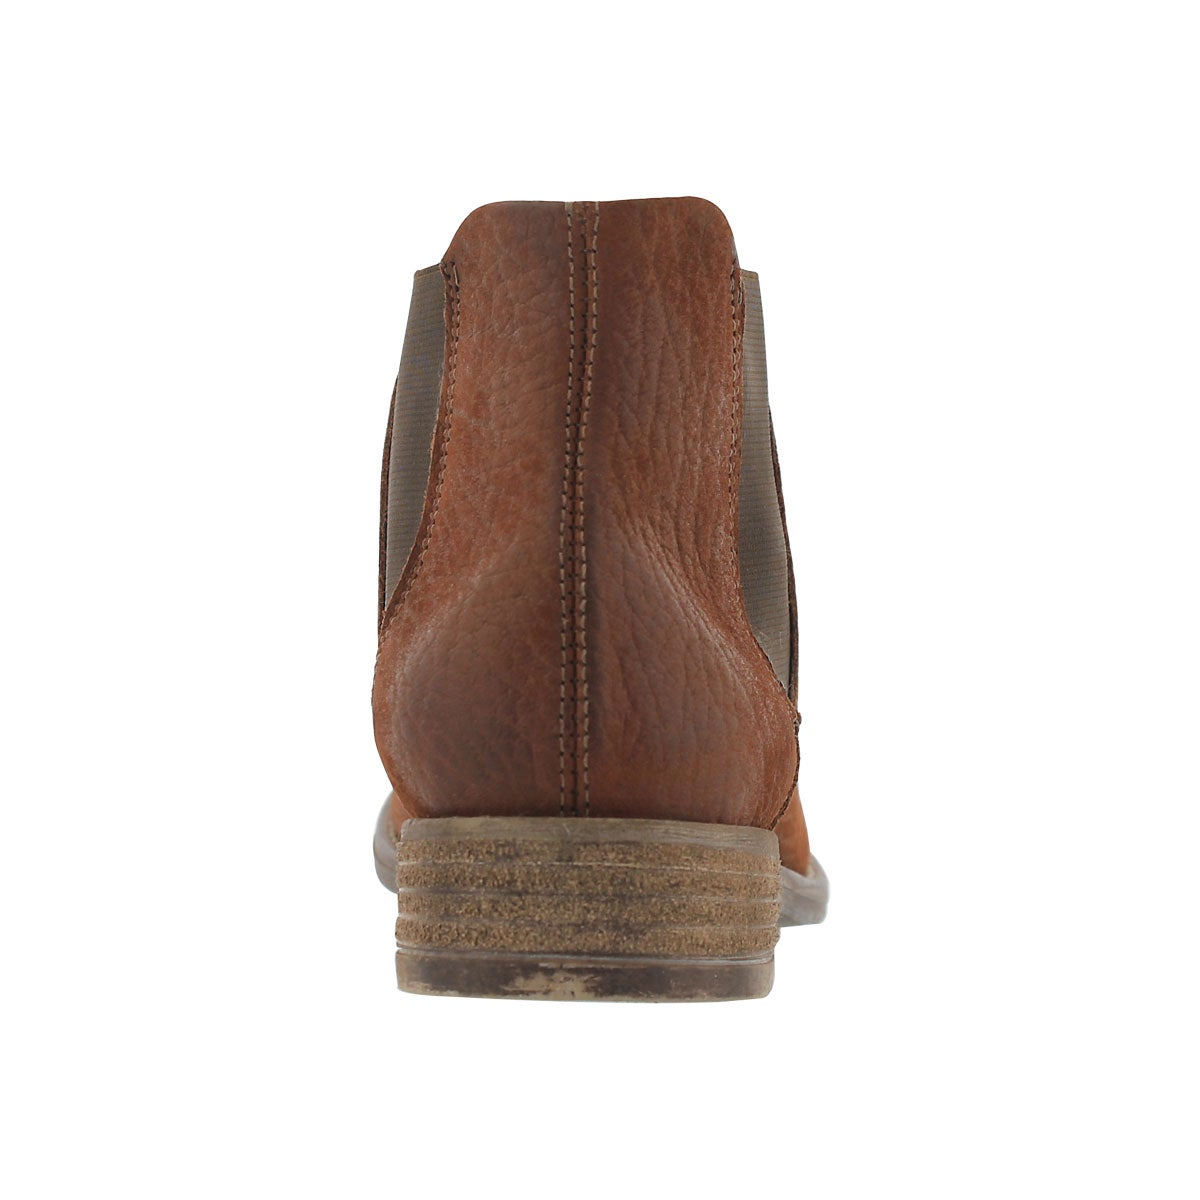 Lds Sienna 05 castagne ankle boot